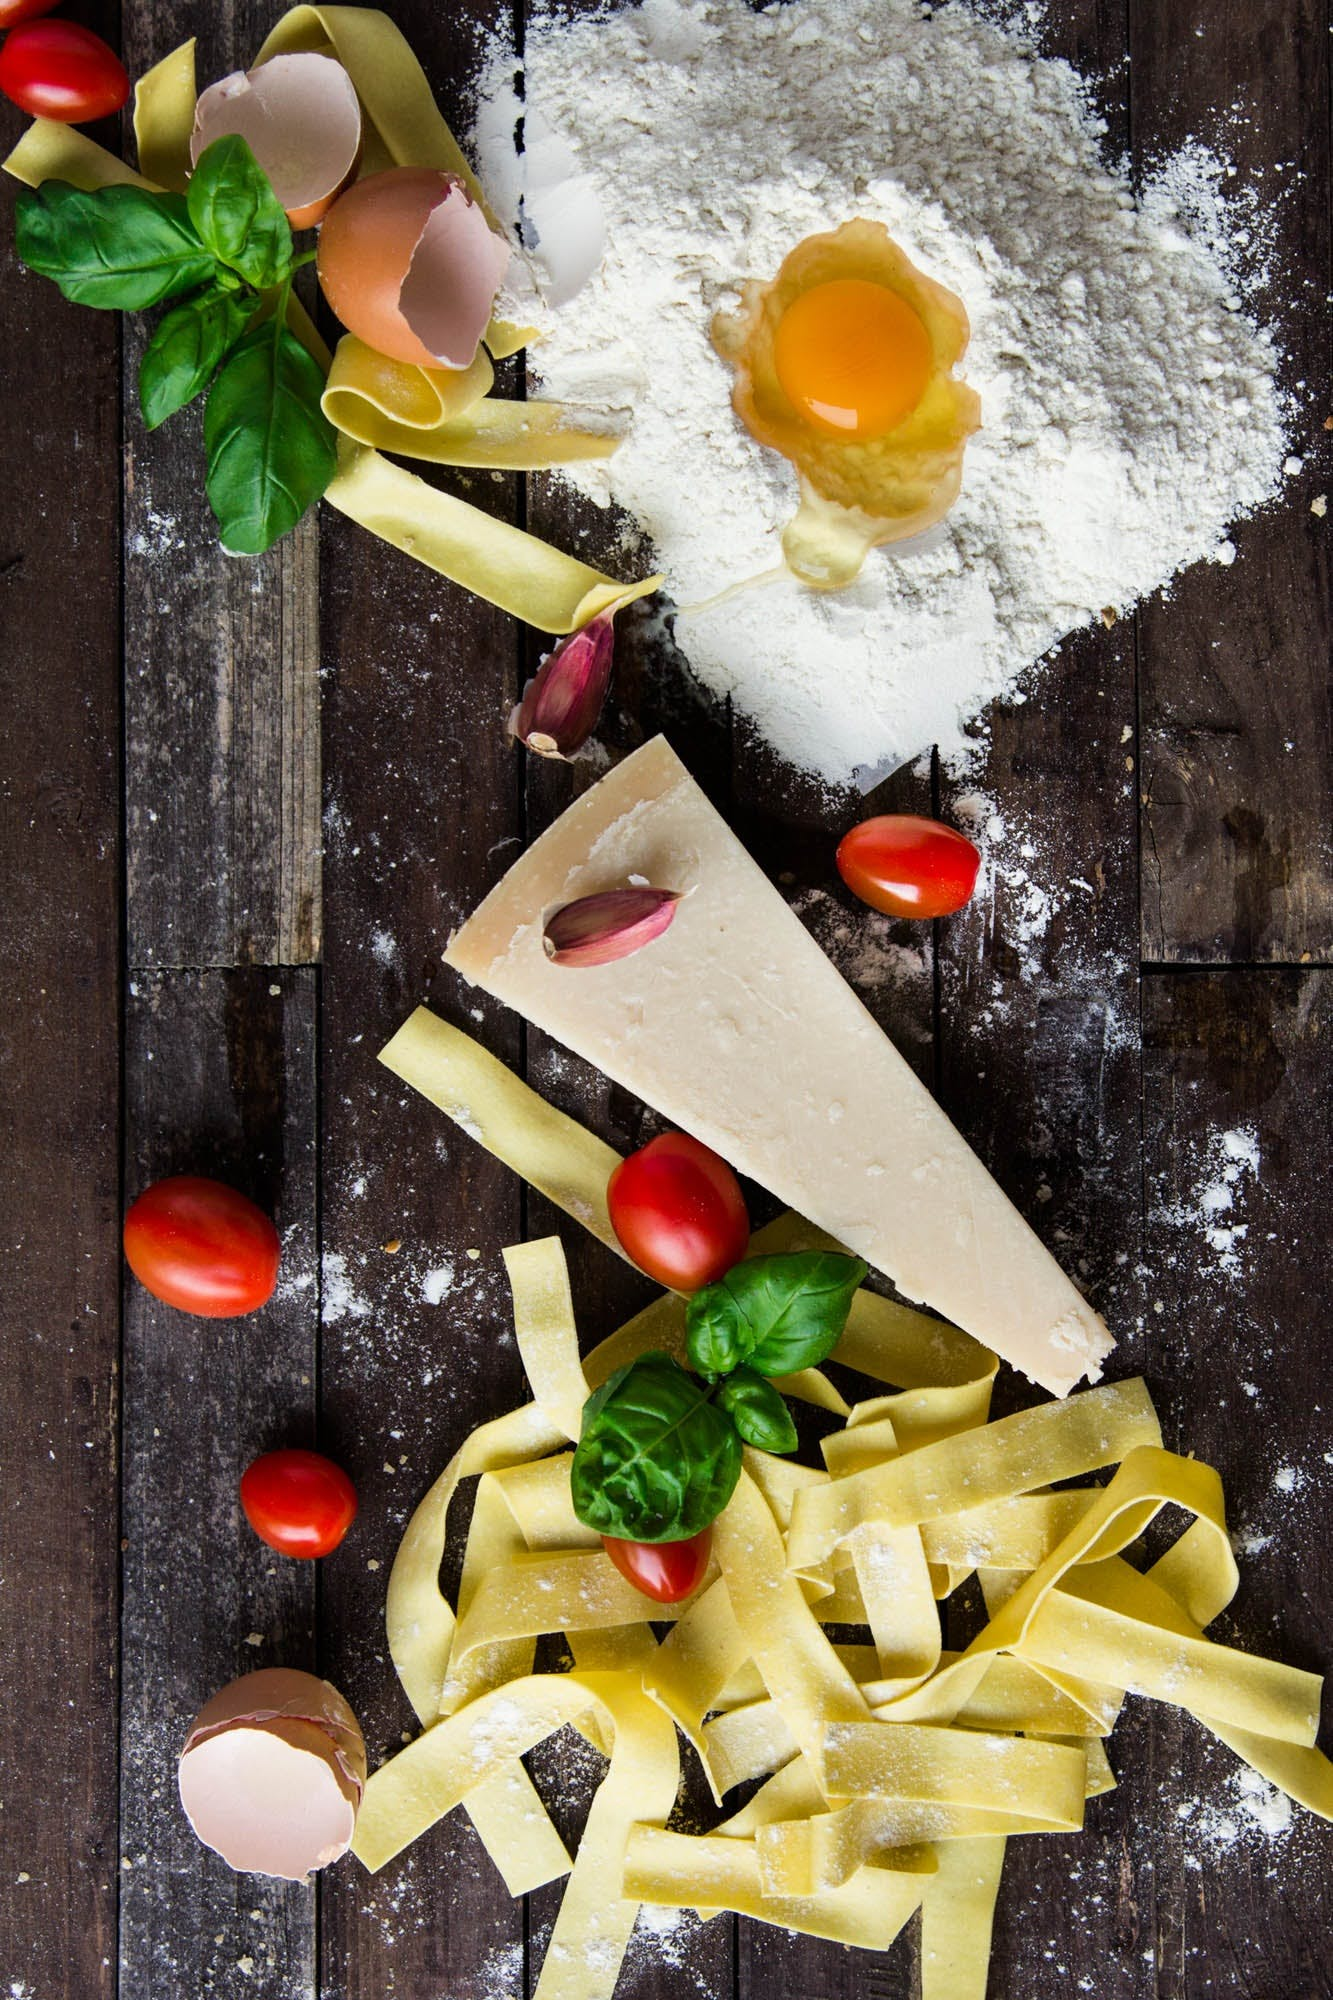 Pasta Tomatoes and Flour With Egg Shells on Table